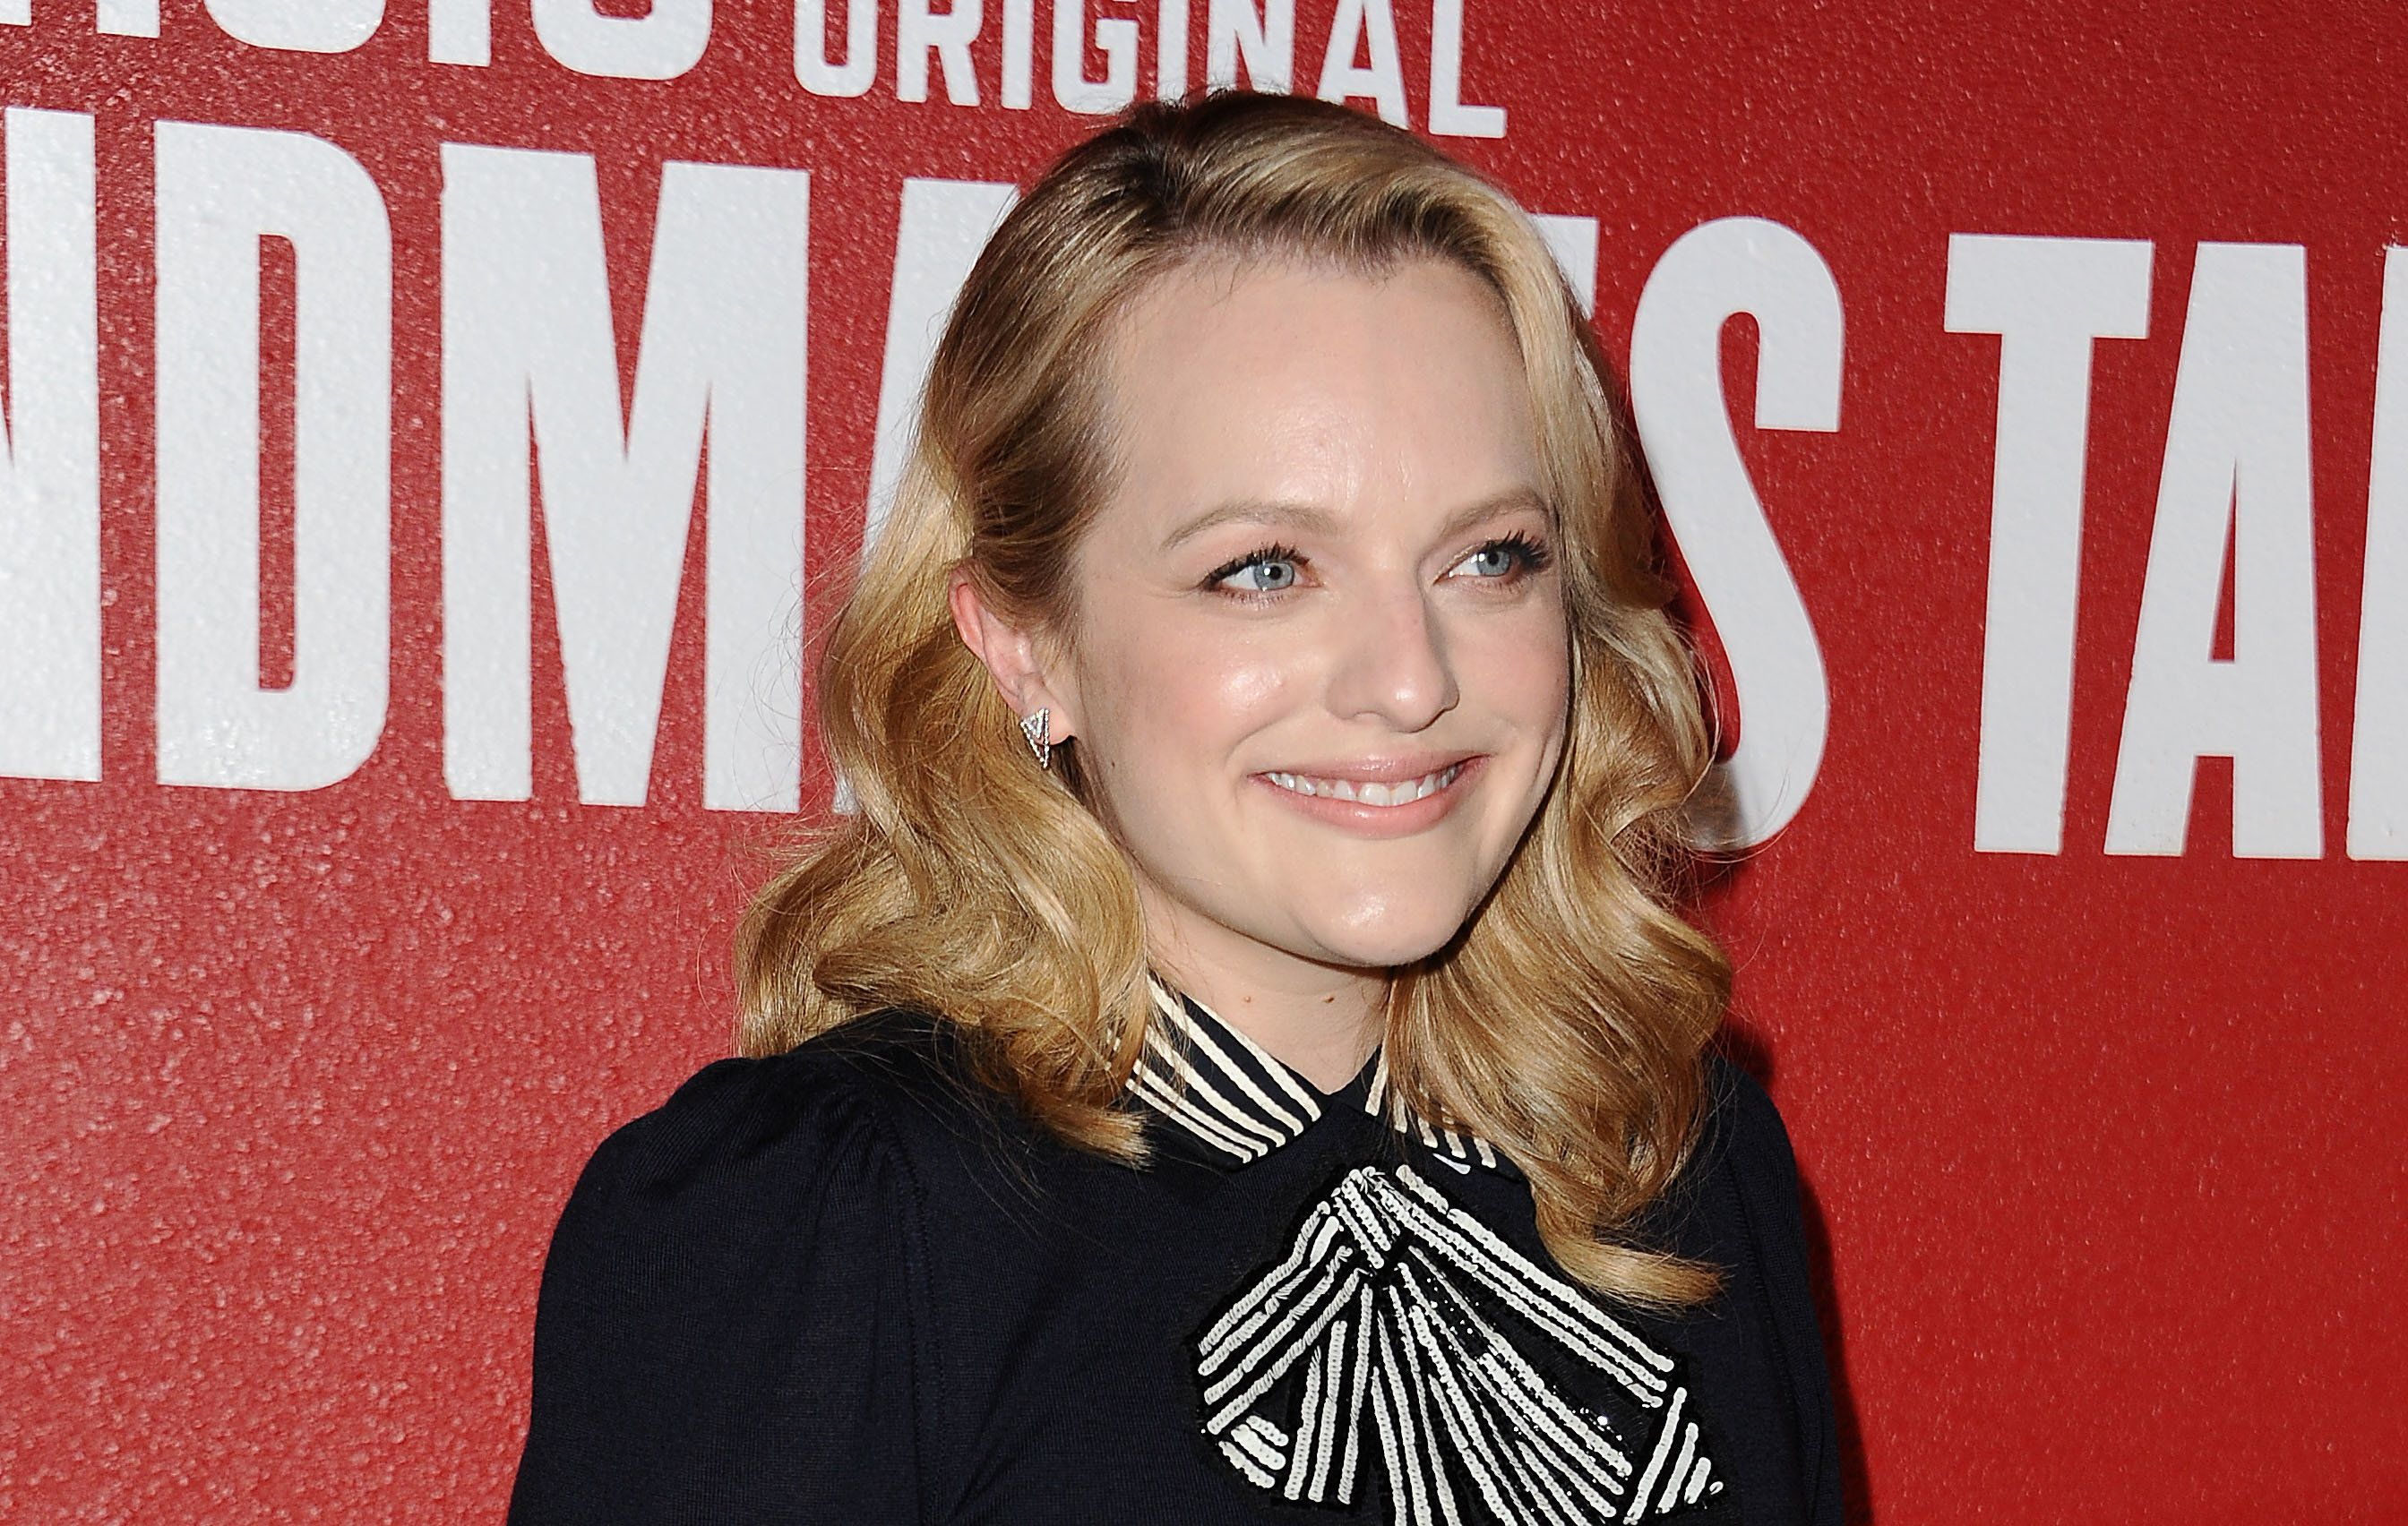 LOS ANGELES, CA - AUGUST 14:  Actress Elisabeth Moss attends 'The Handmaid's Tale' FYC event at DGA Theater on August 14, 2017 in Los Angeles, California.  (Photo by Jason LaVeris/FilmMagic)